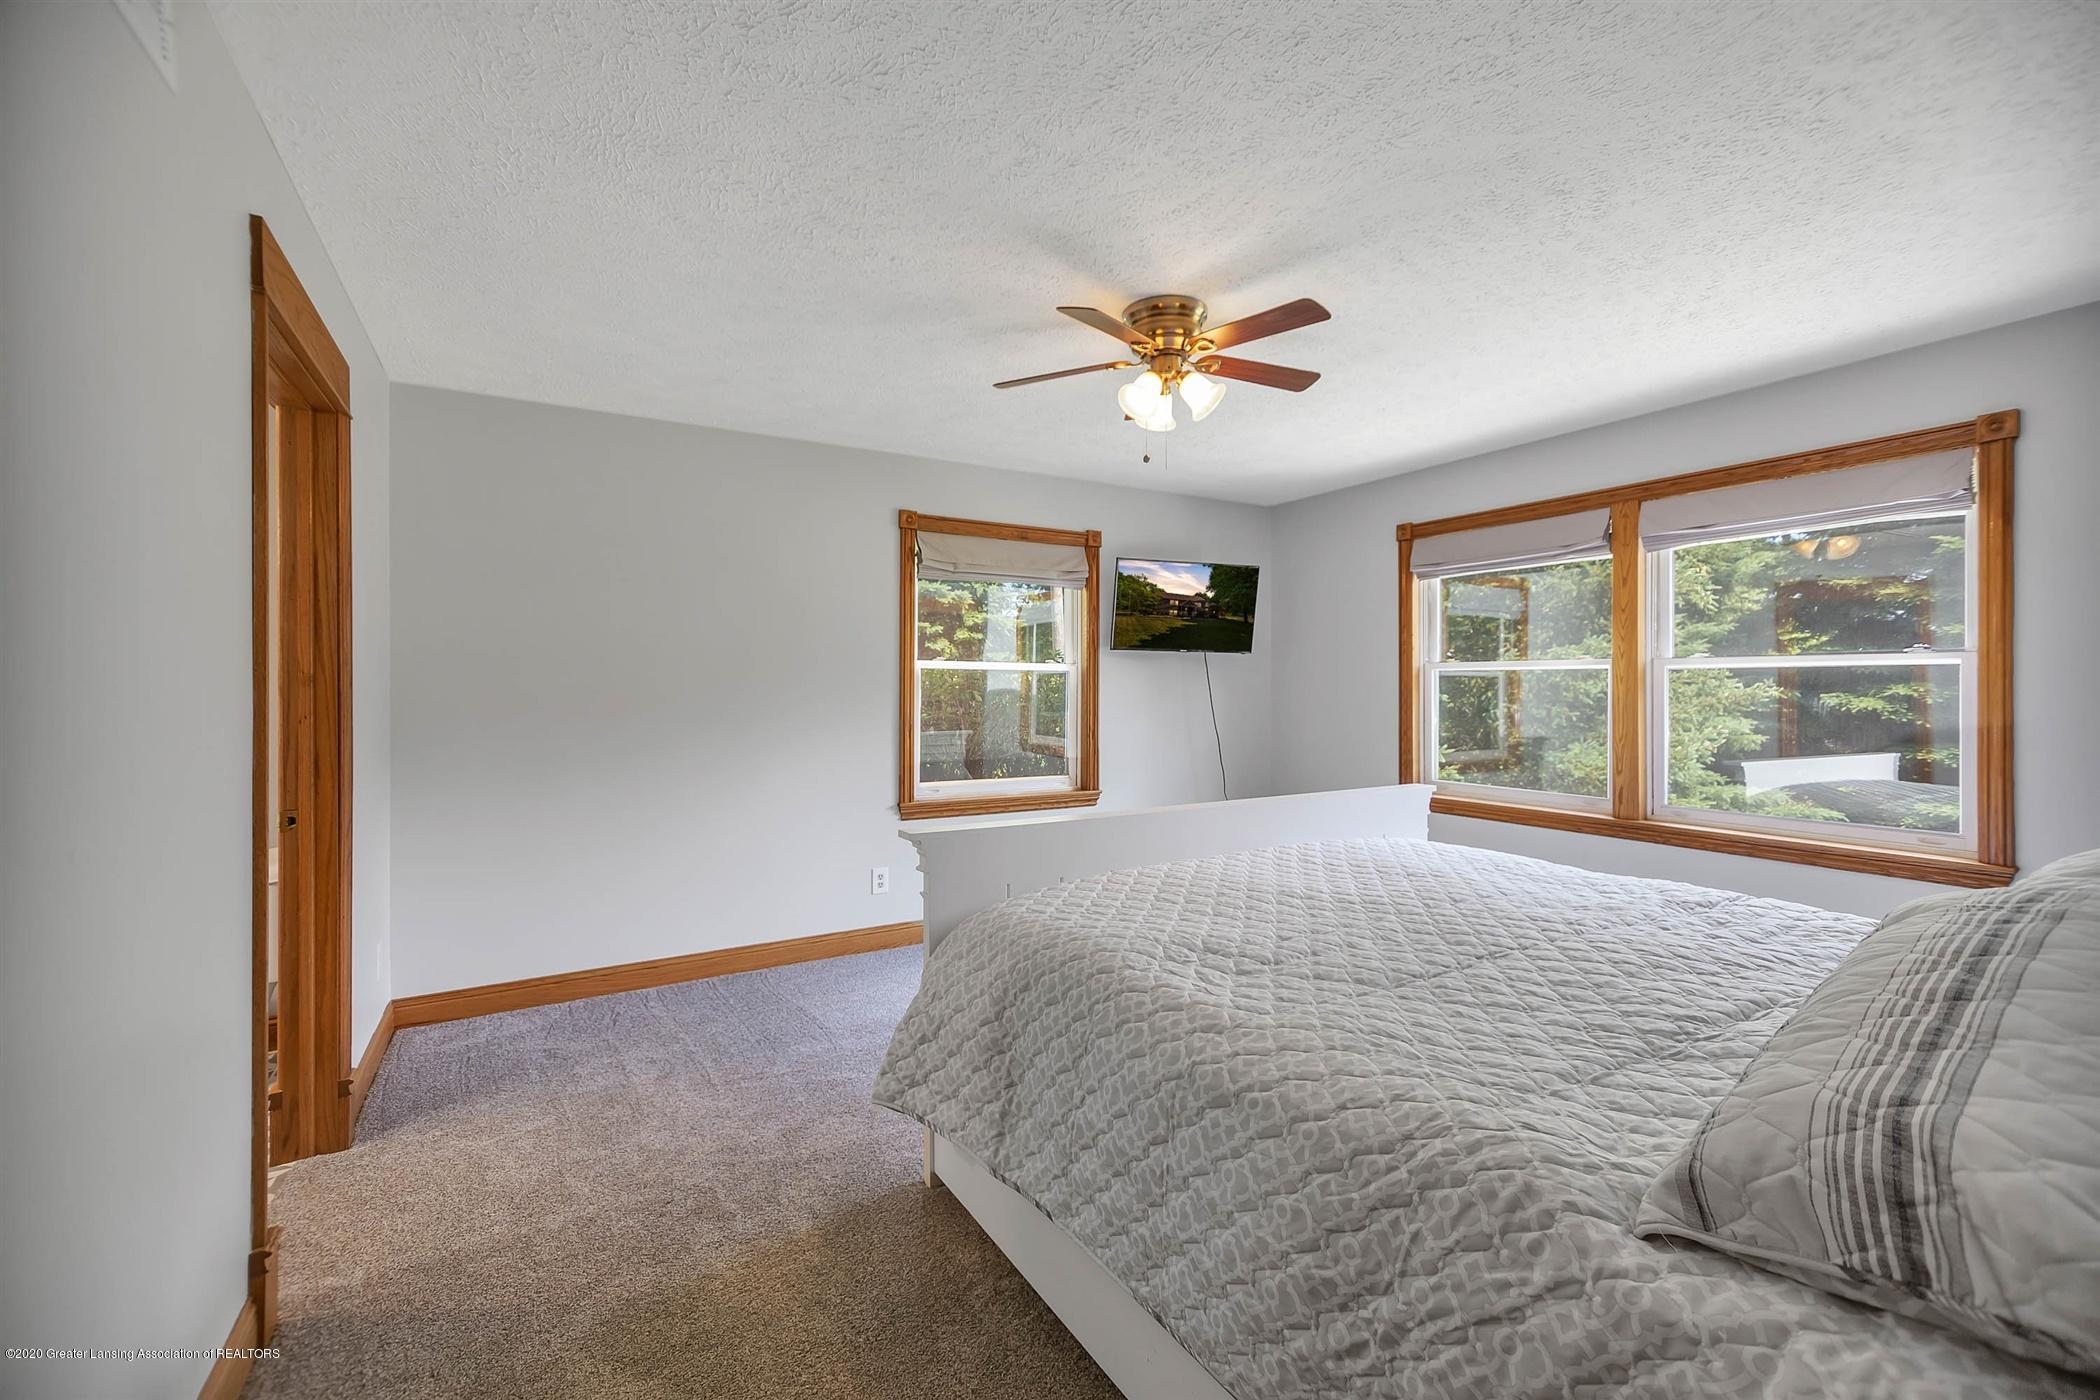 4445 W Britton Rd - UPPER LEVEL Master Bedroom - 18